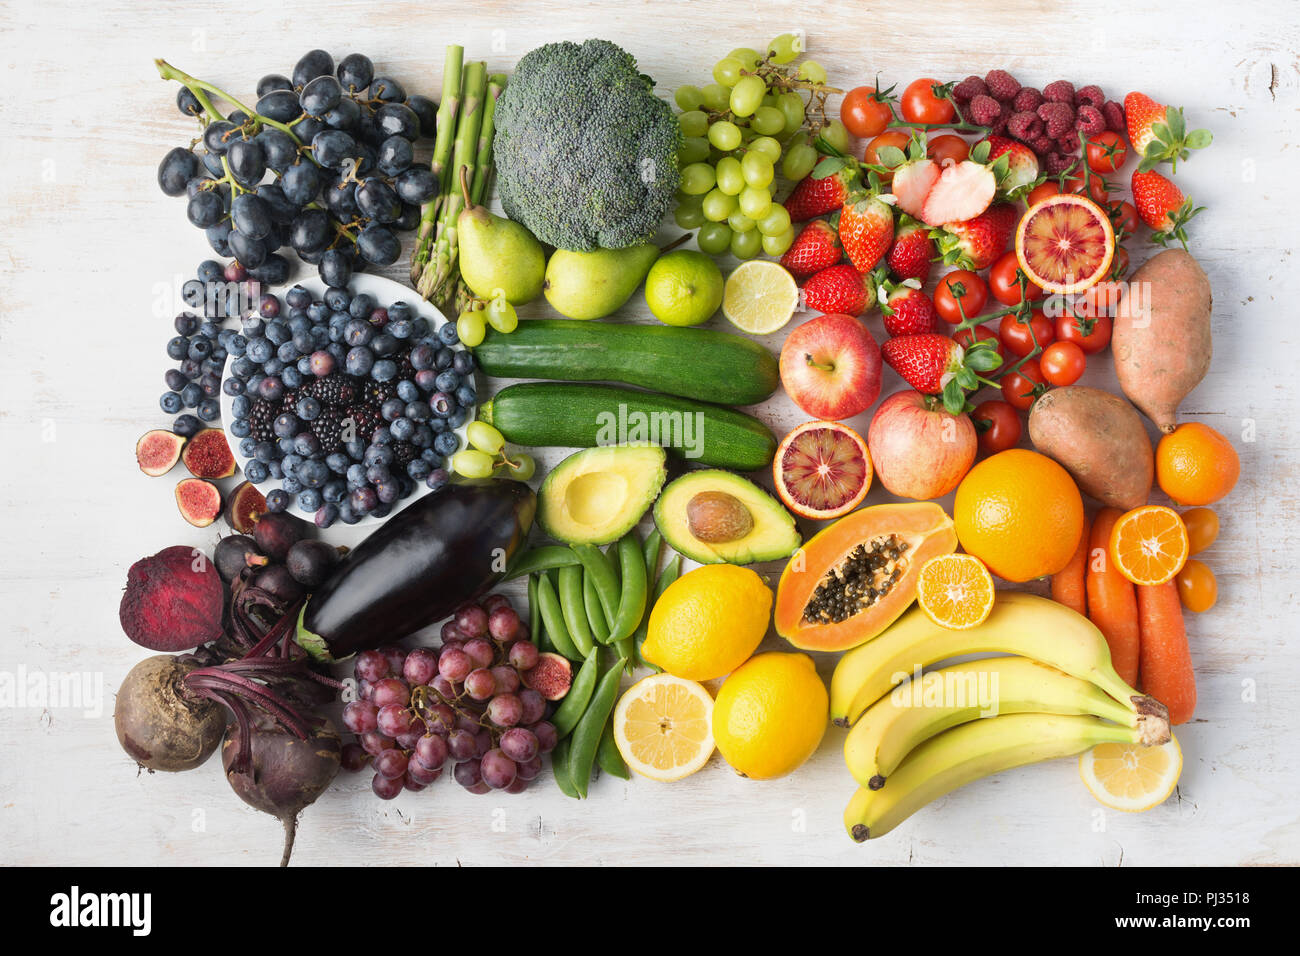 Healthy eating concept, assortment of rainbow fruits and vegetables, berries, bananas, oranges, grapes, broccoli, beetroot on the off white table arranged in a rectangle, top view, selective focus Stock Photo